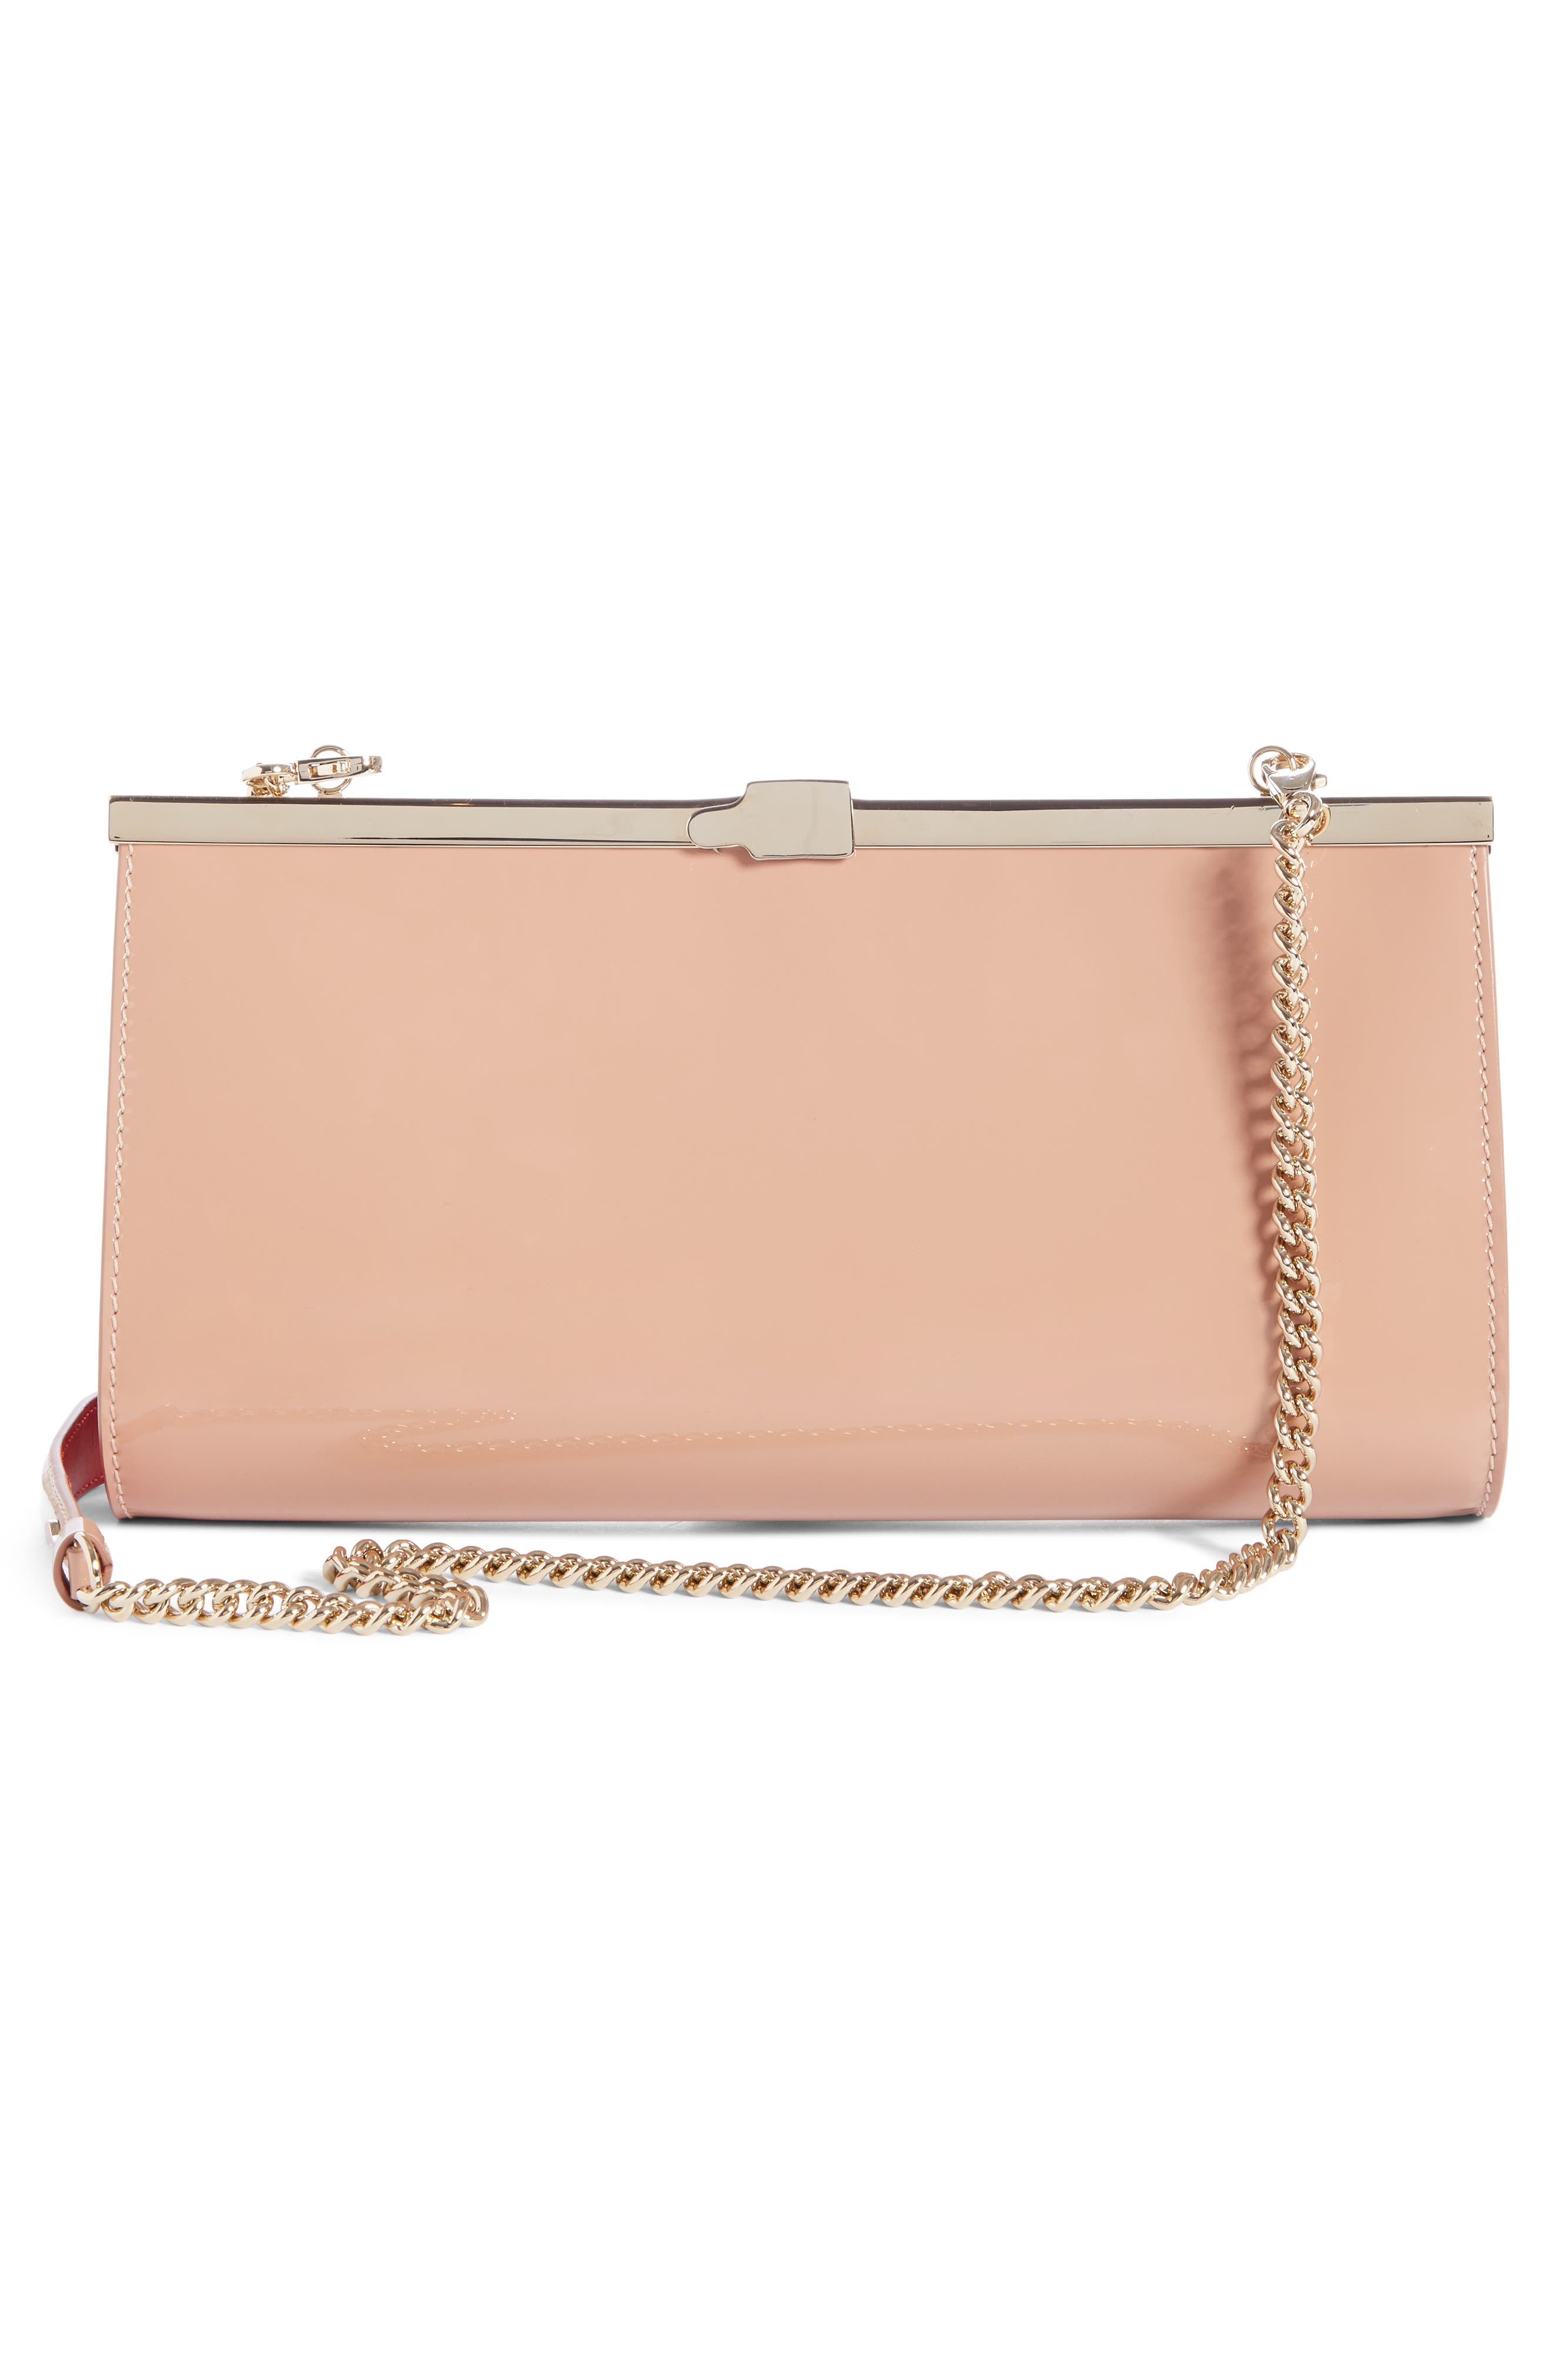 CHRISTIAN LOUBOUTIN, Palmette Patent Leather Frame Clutch, Alternate thumbnail 2, color, NUDE